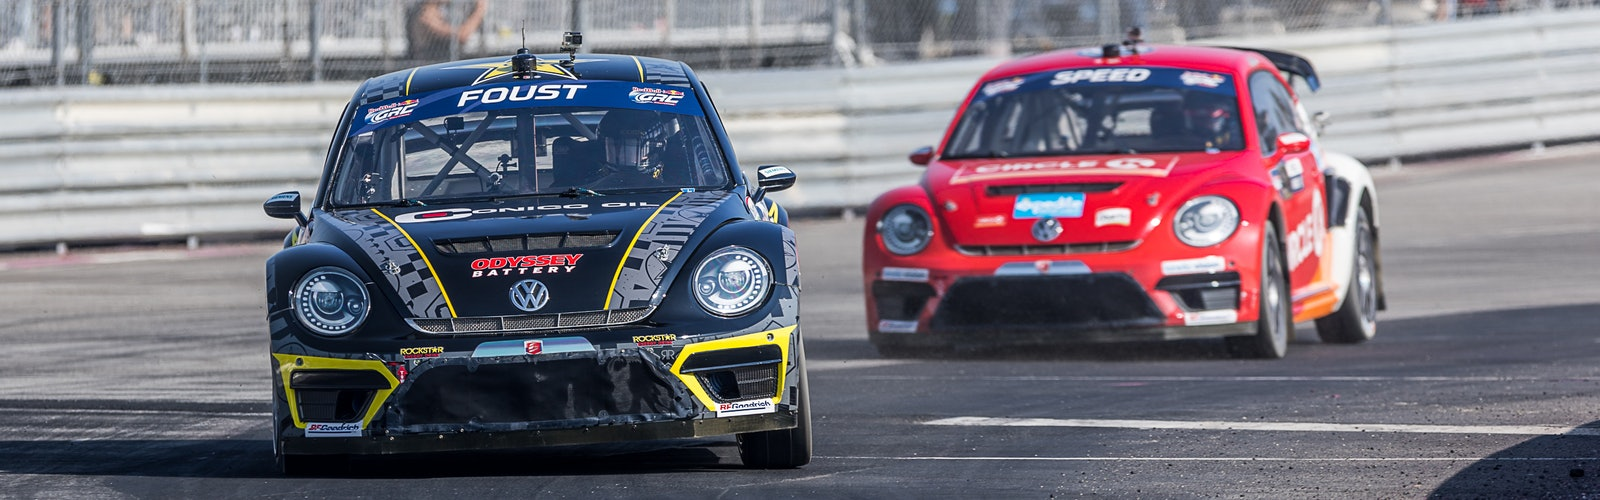 Tanner Foust Scott Speed Volkswagen Beetle Global Rallycross 2017